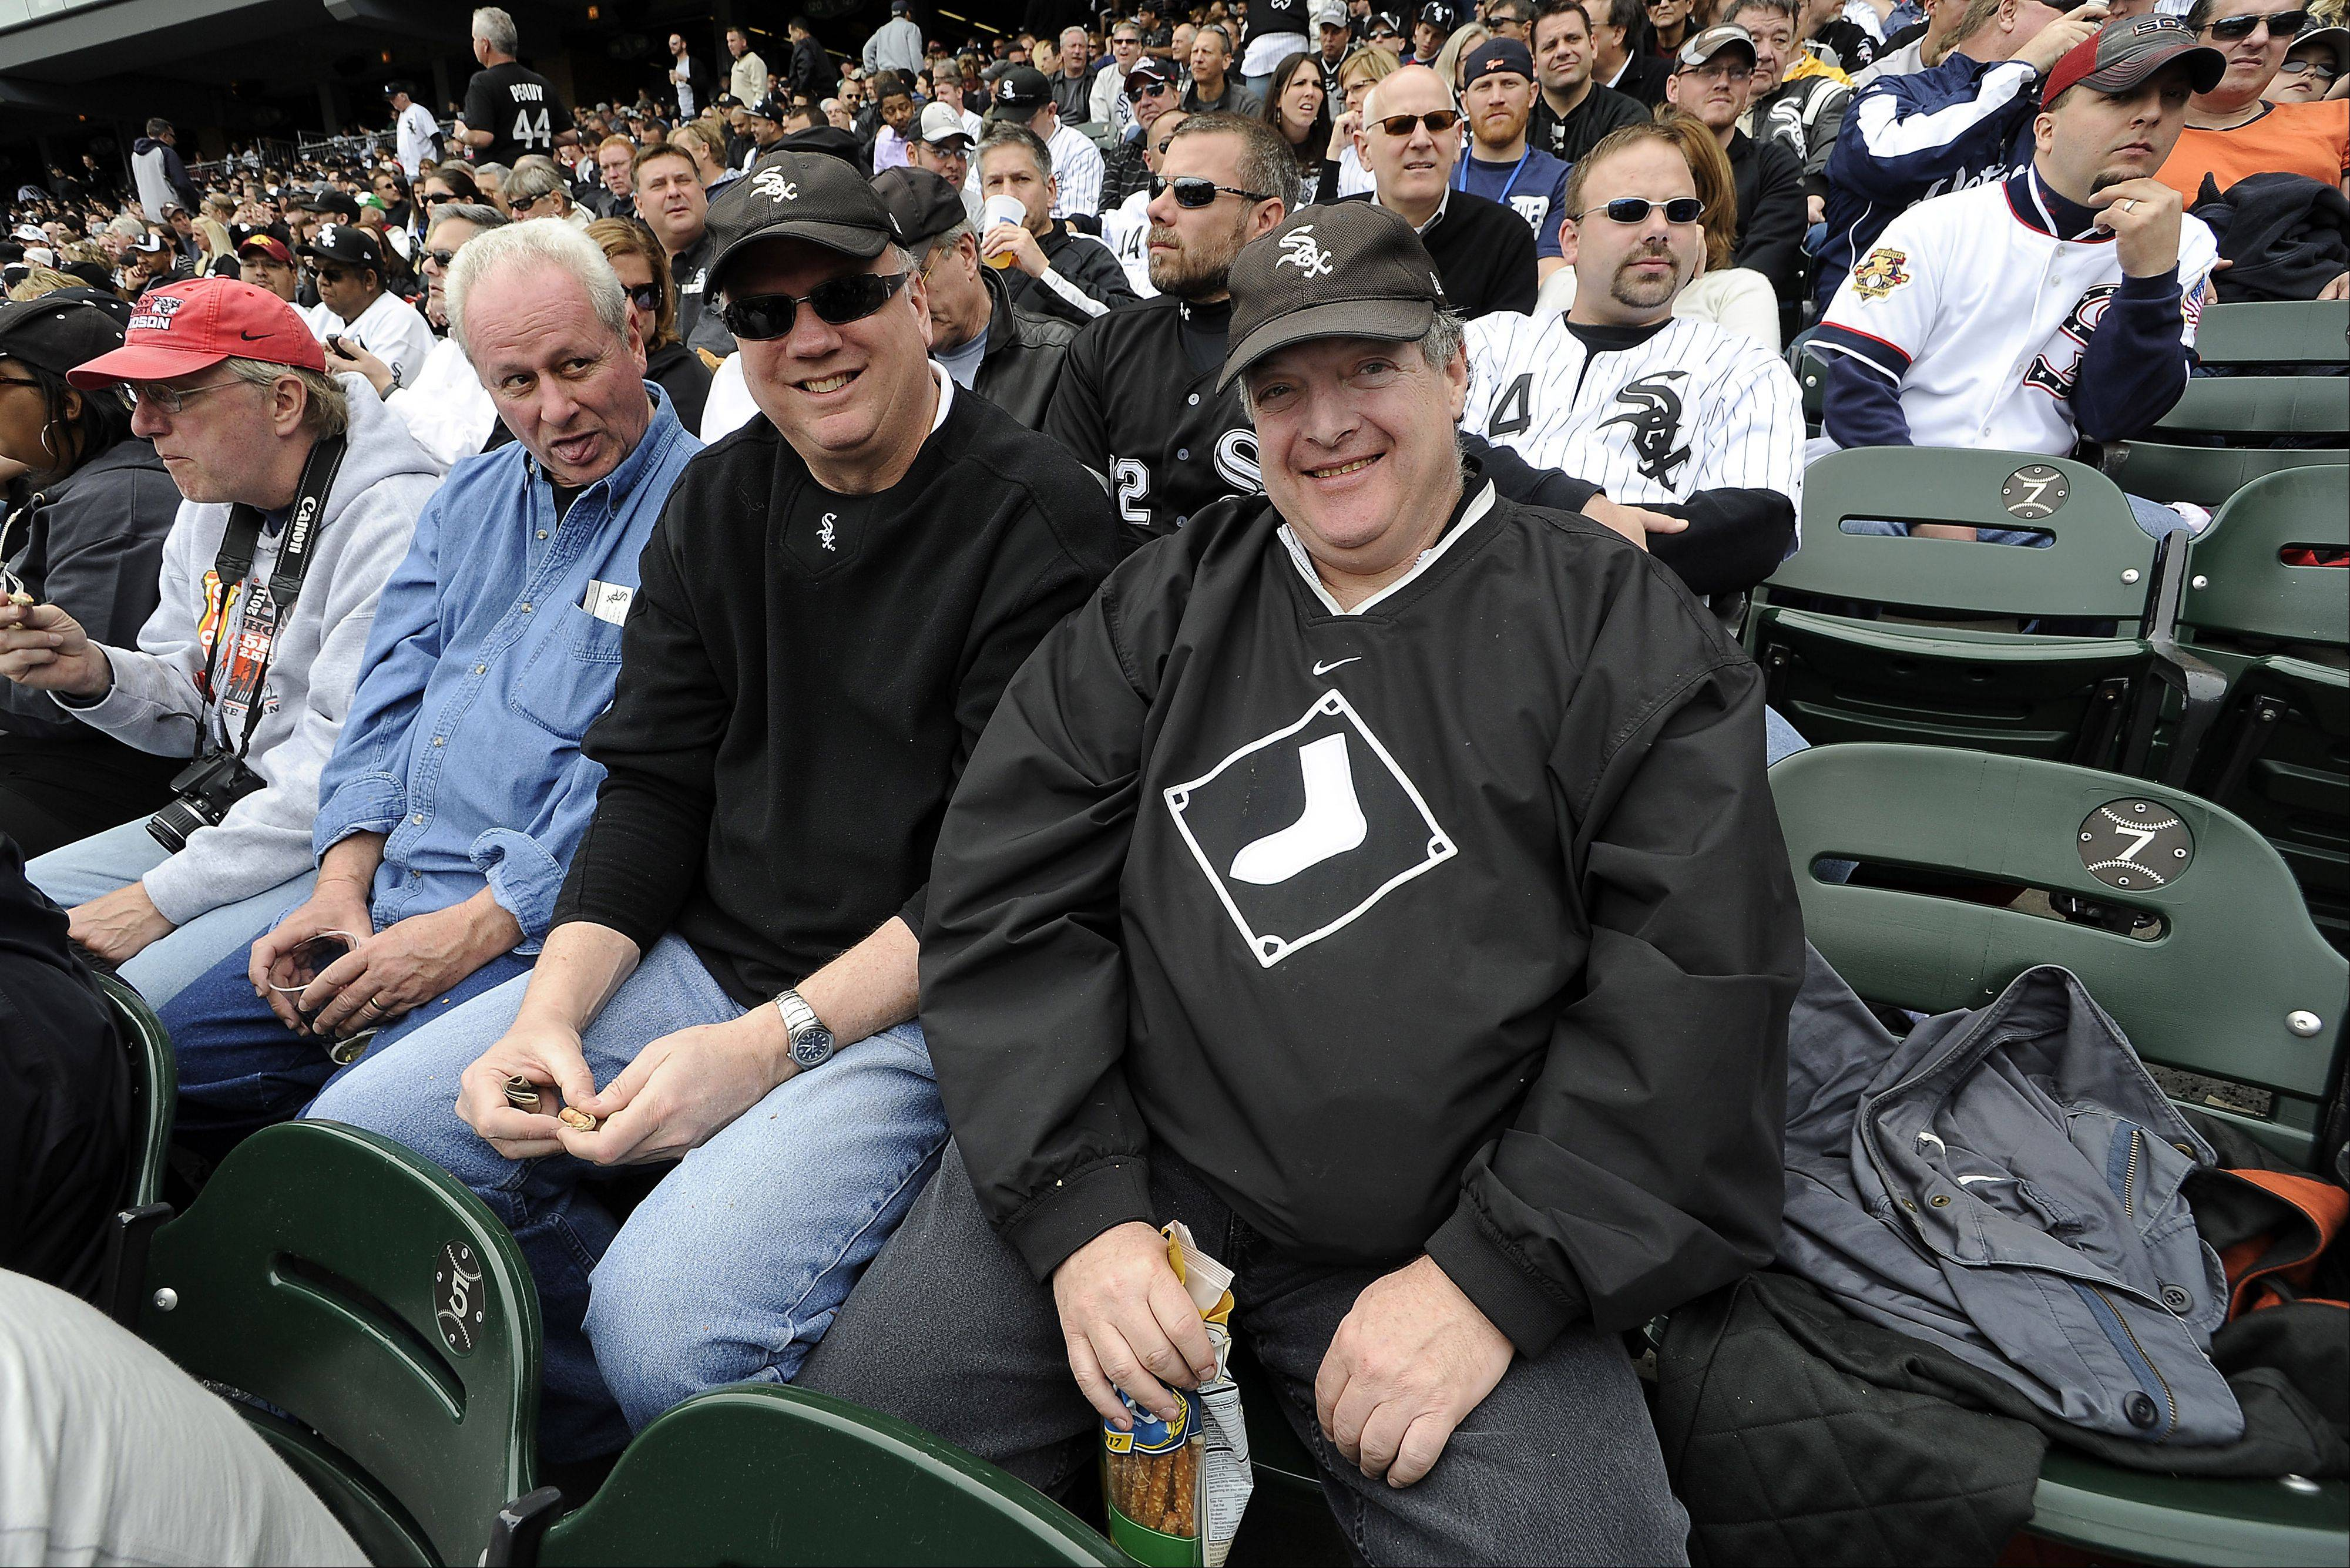 Sox opener has lifelong appeal for Libertyville man